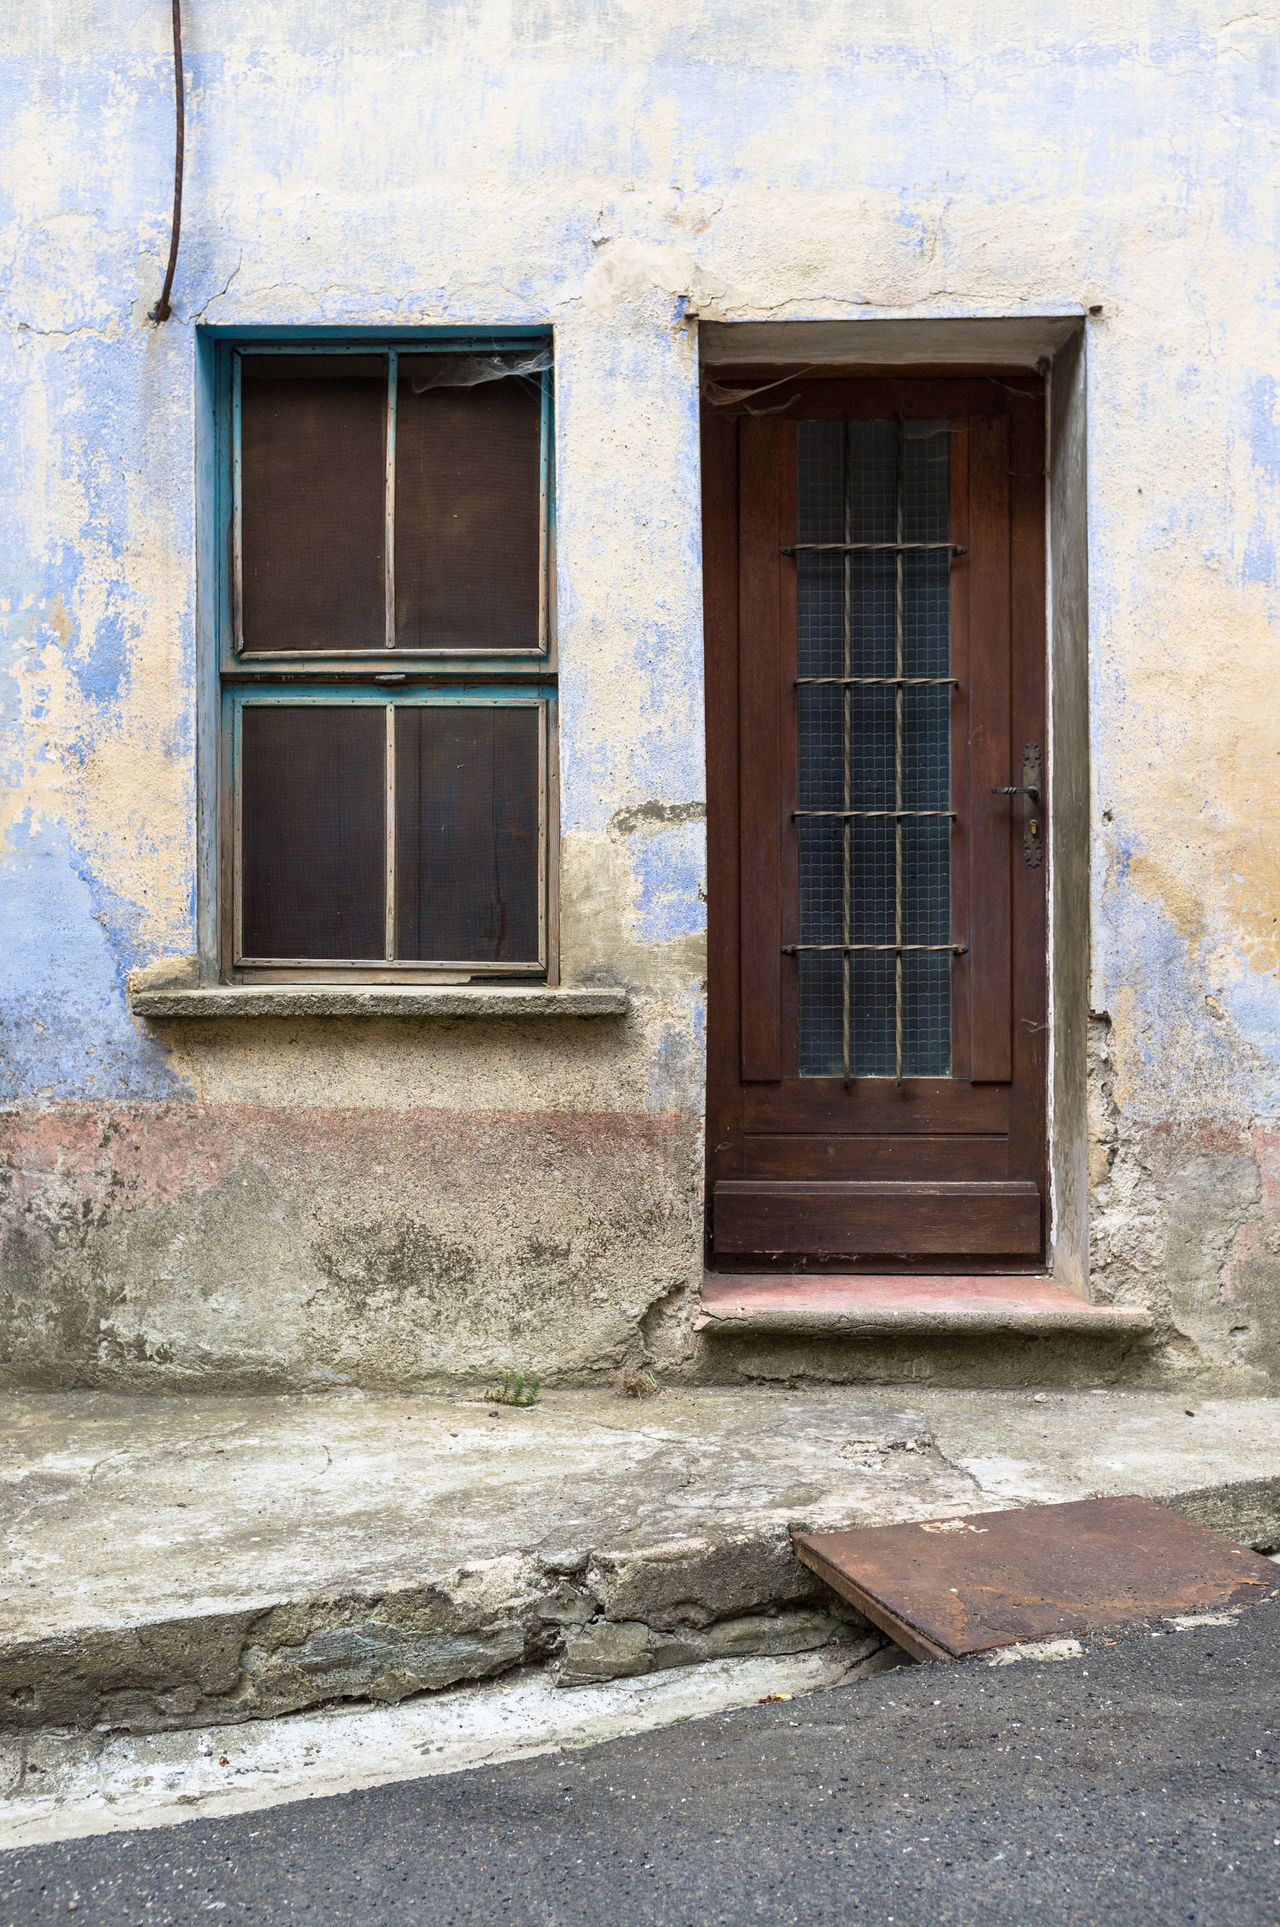 Architecture Blue Building Exterior Built Structure Day Door Entrance Front Door House Languedoc Lapradelle-Puilaurence No People Outdoors Residential Building Southern France Urban Decay Urban Fragments Urban Geometry Urban Landscape Urbanphotography Window